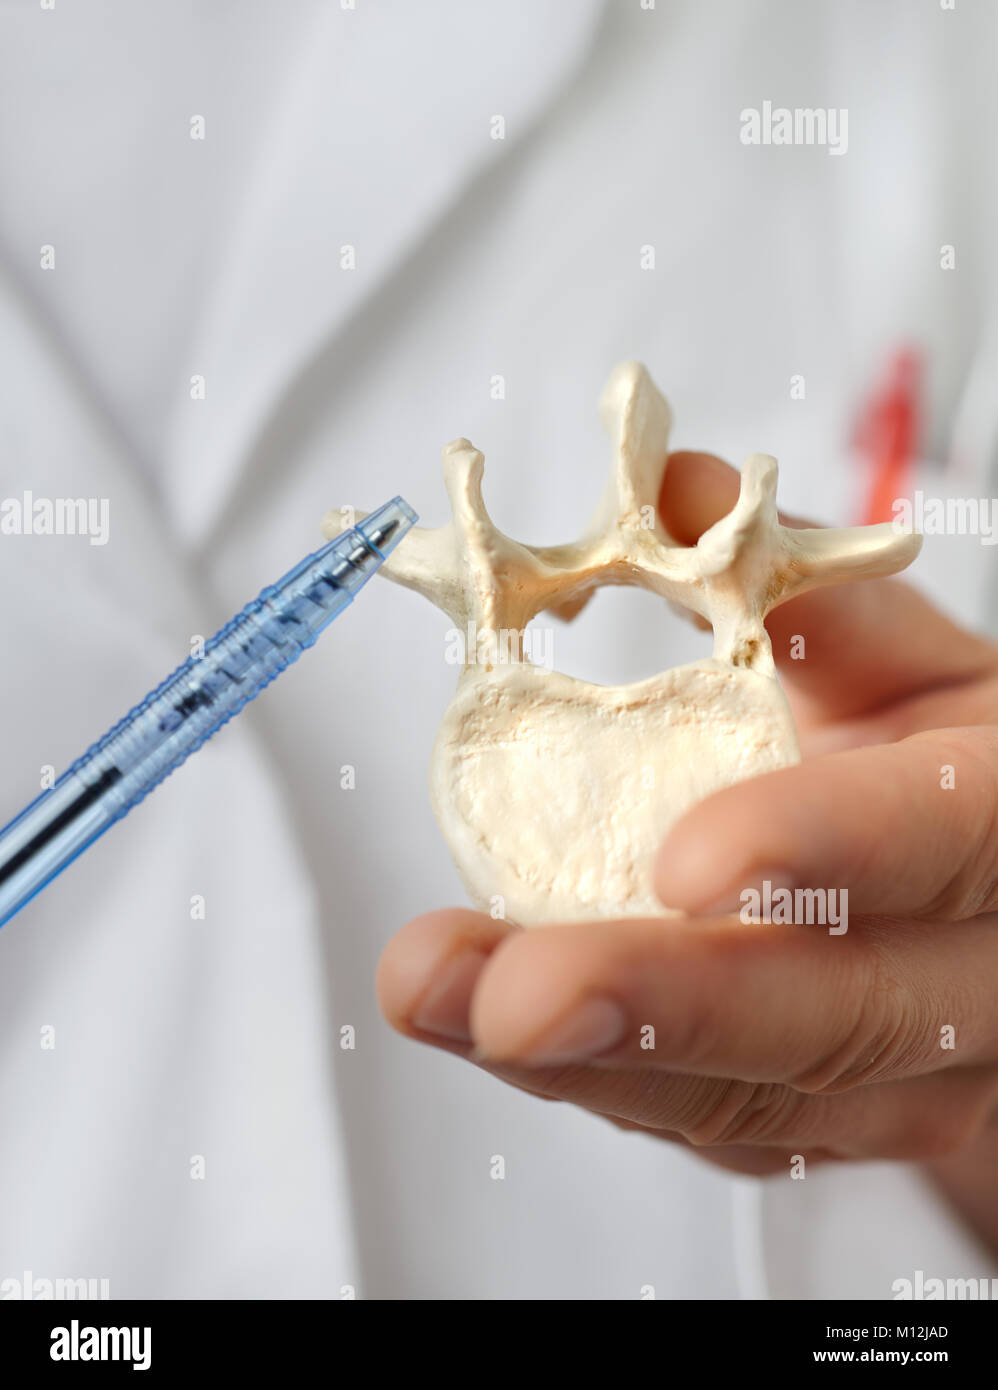 Closeup on a model of human vertebra in hand of a heath practitioner pointing at it. - Stock Image